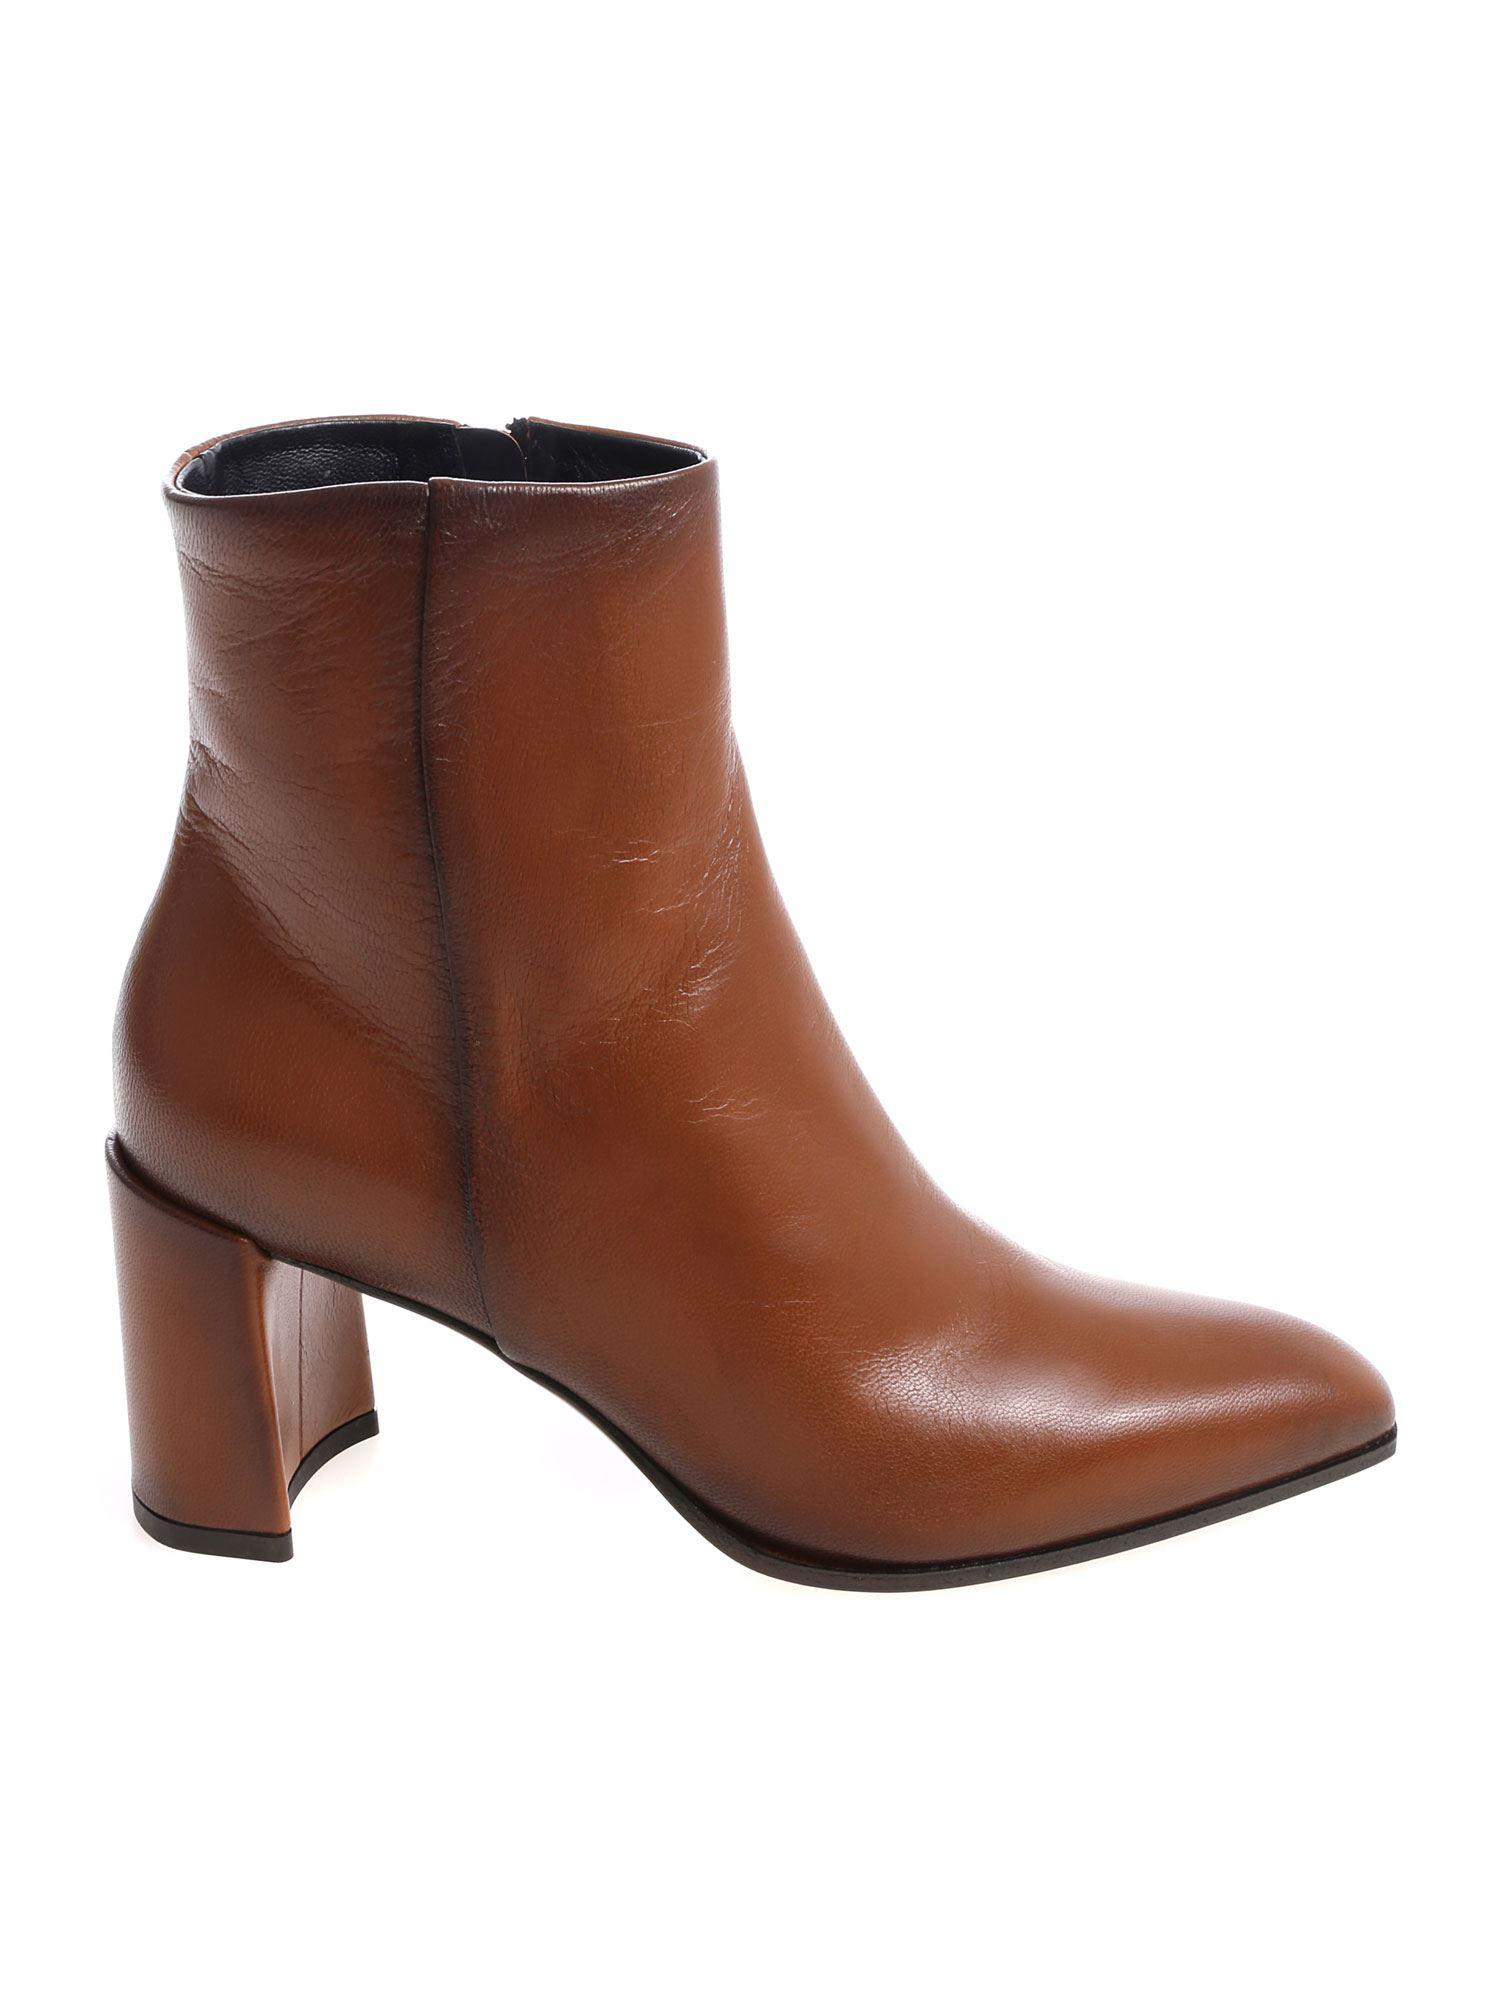 Brown Melange In Premiata Leather Lyst Boots Ankle dRpIzxqX